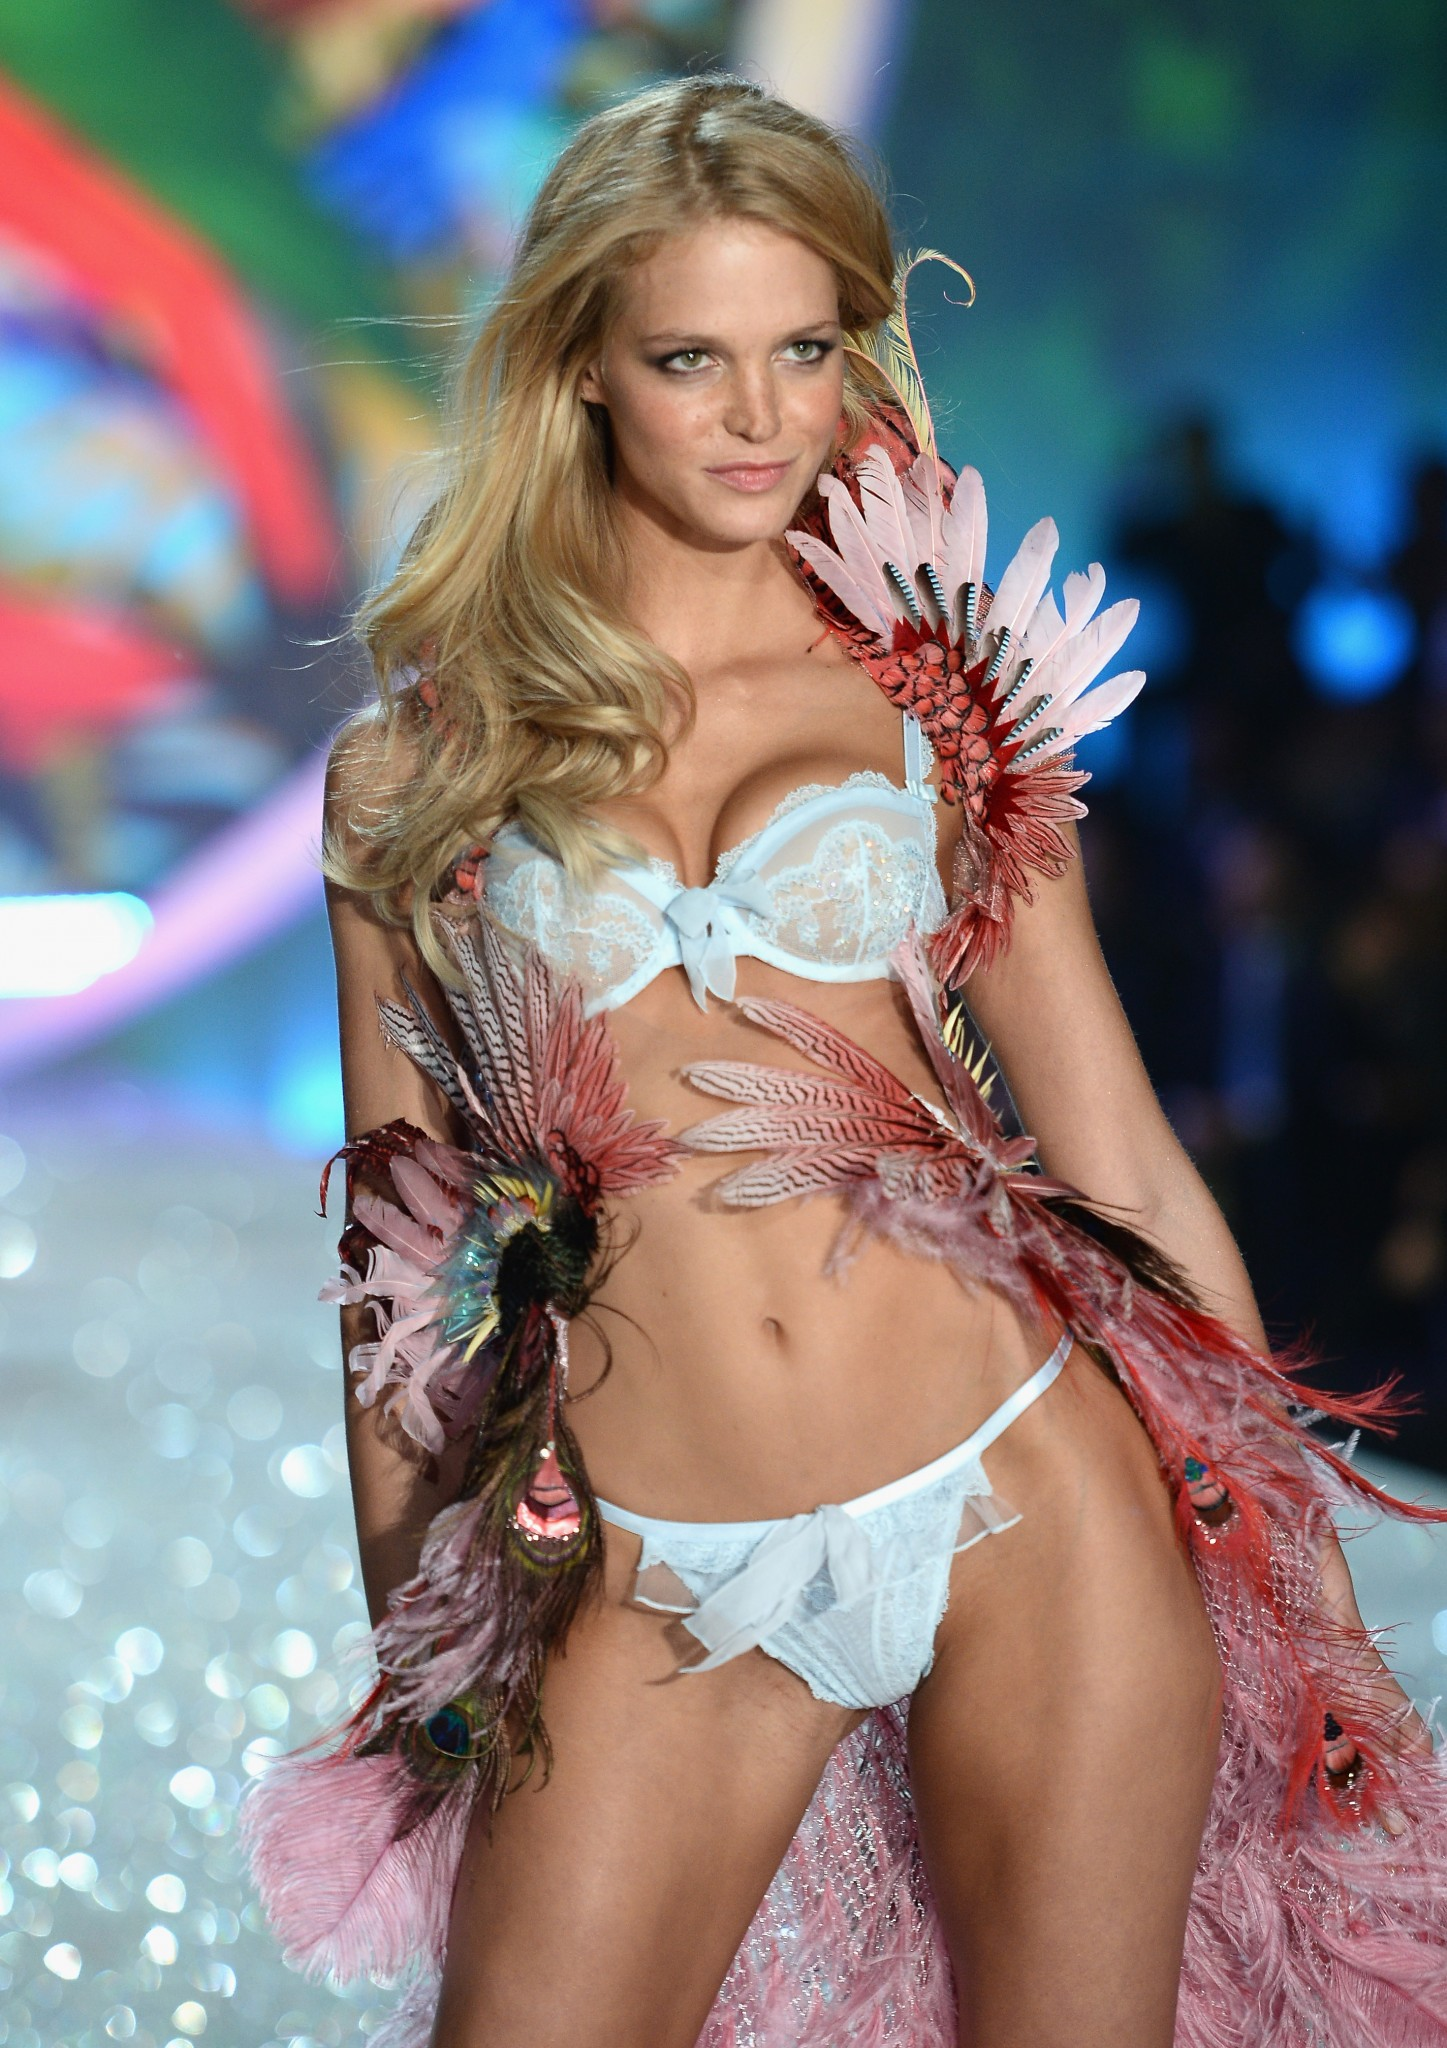 Erin Heatherton Loaded